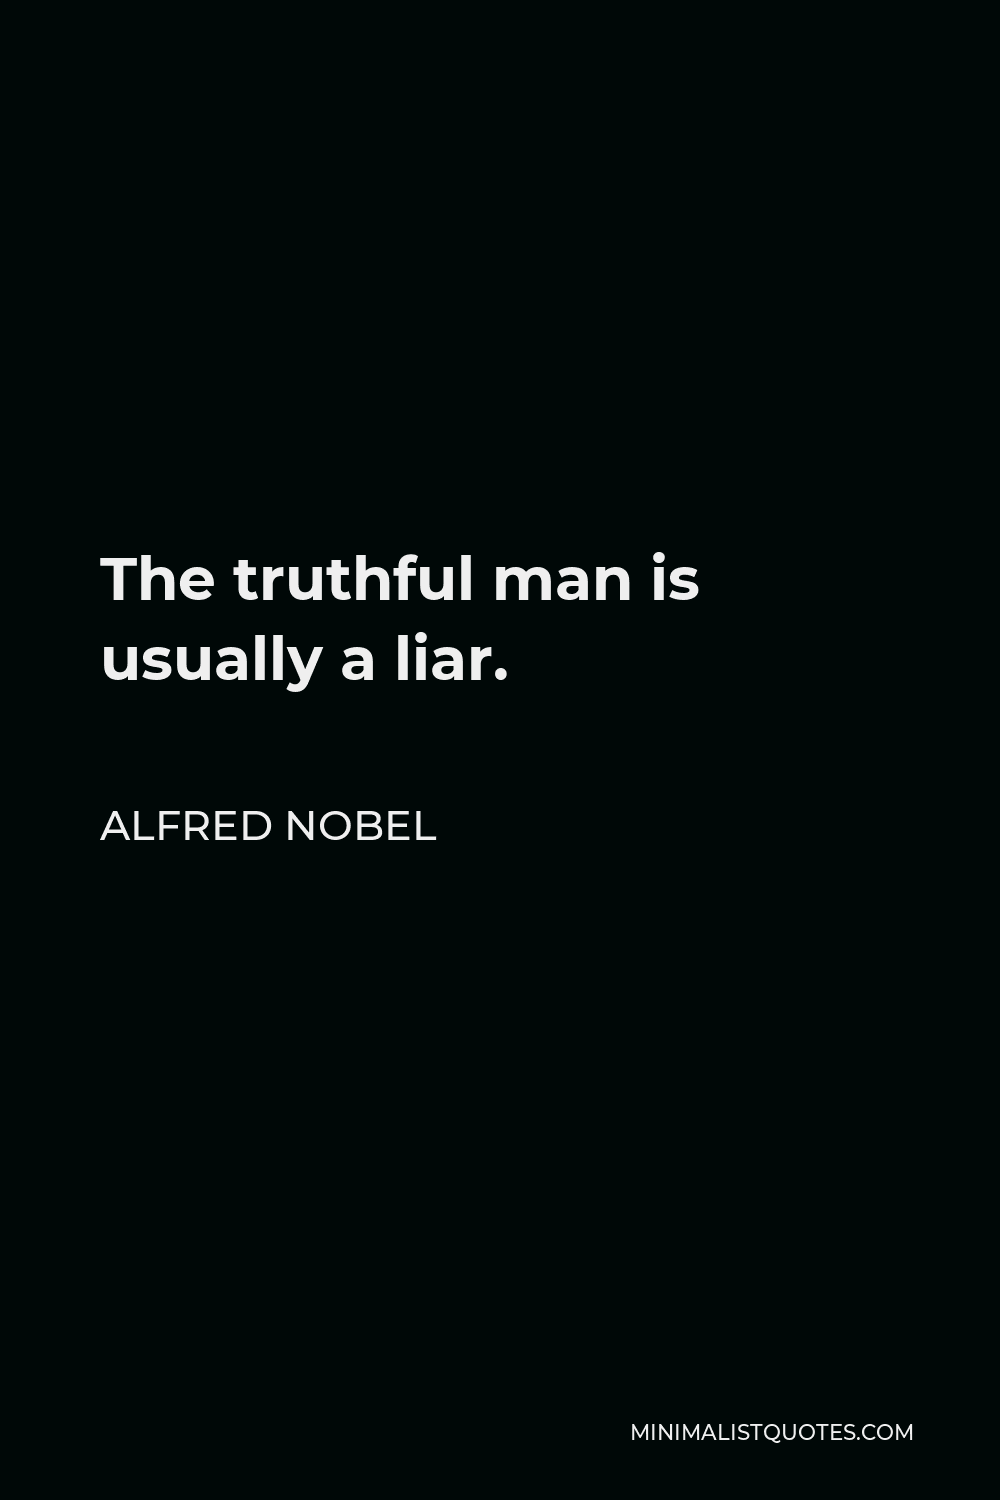 Alfred Nobel Quote - The truthful man is usually a liar.